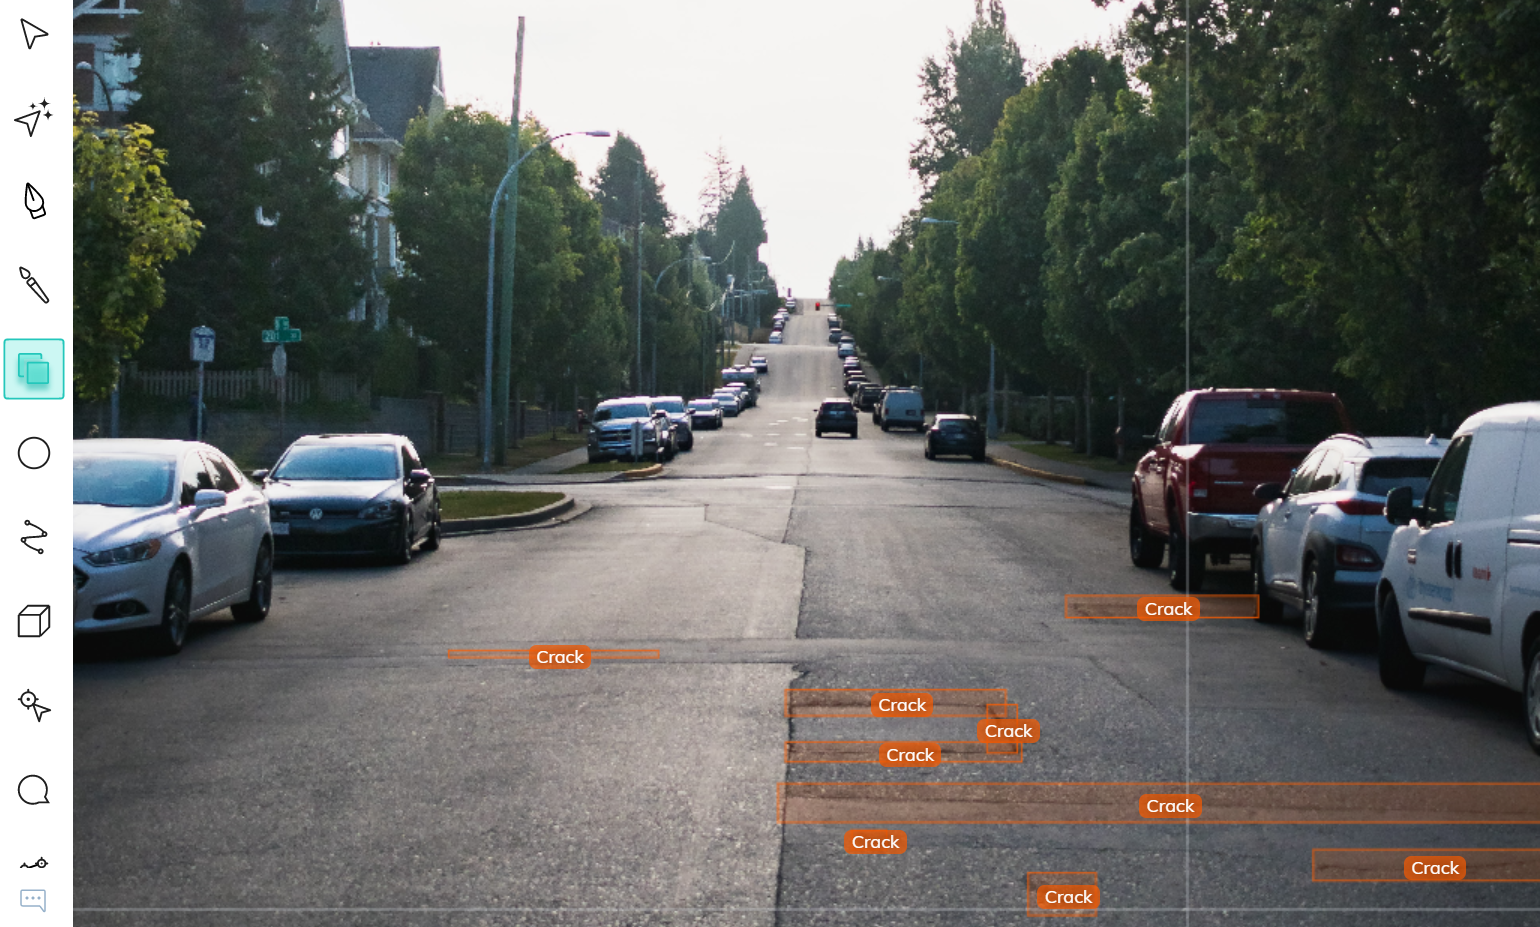 Bounding boxes around cracks in the road for AI road condition monitoring